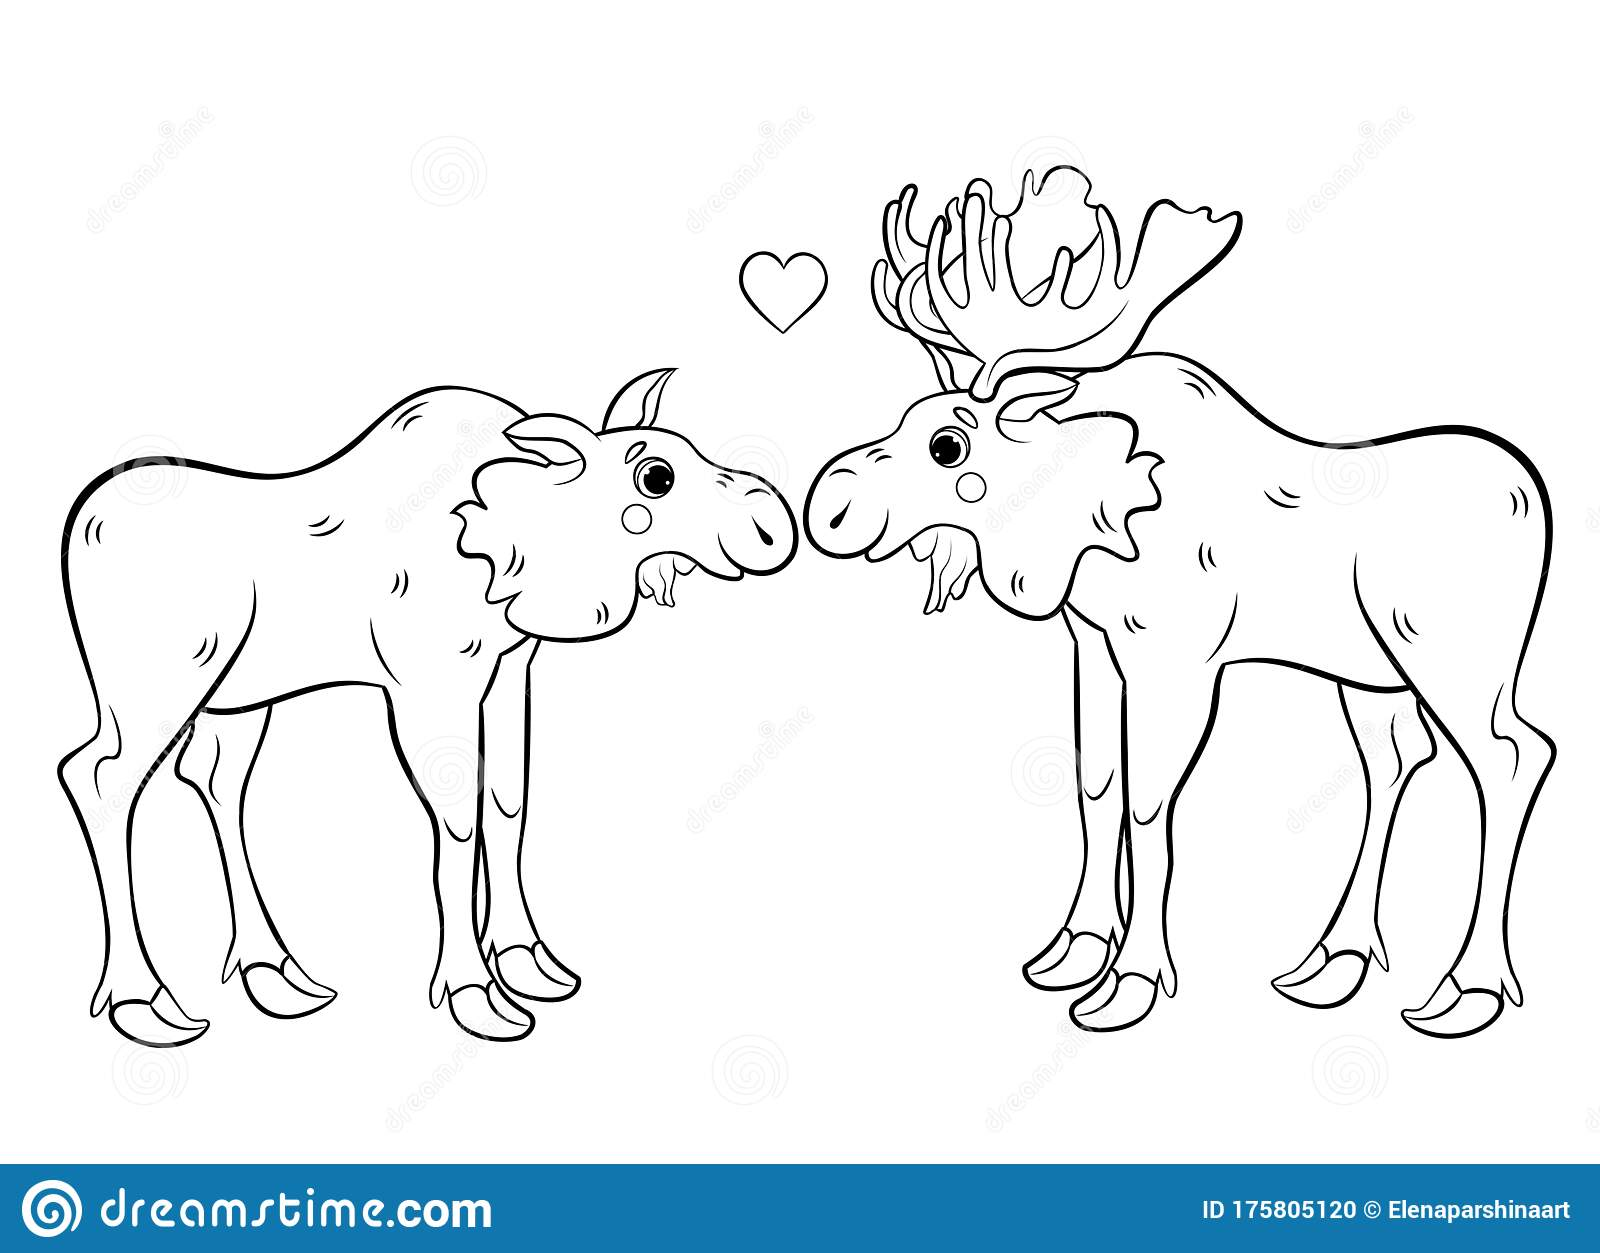 Moose coloring page - Free Printable Coloring Pages | Coloring ... | 1253x1600